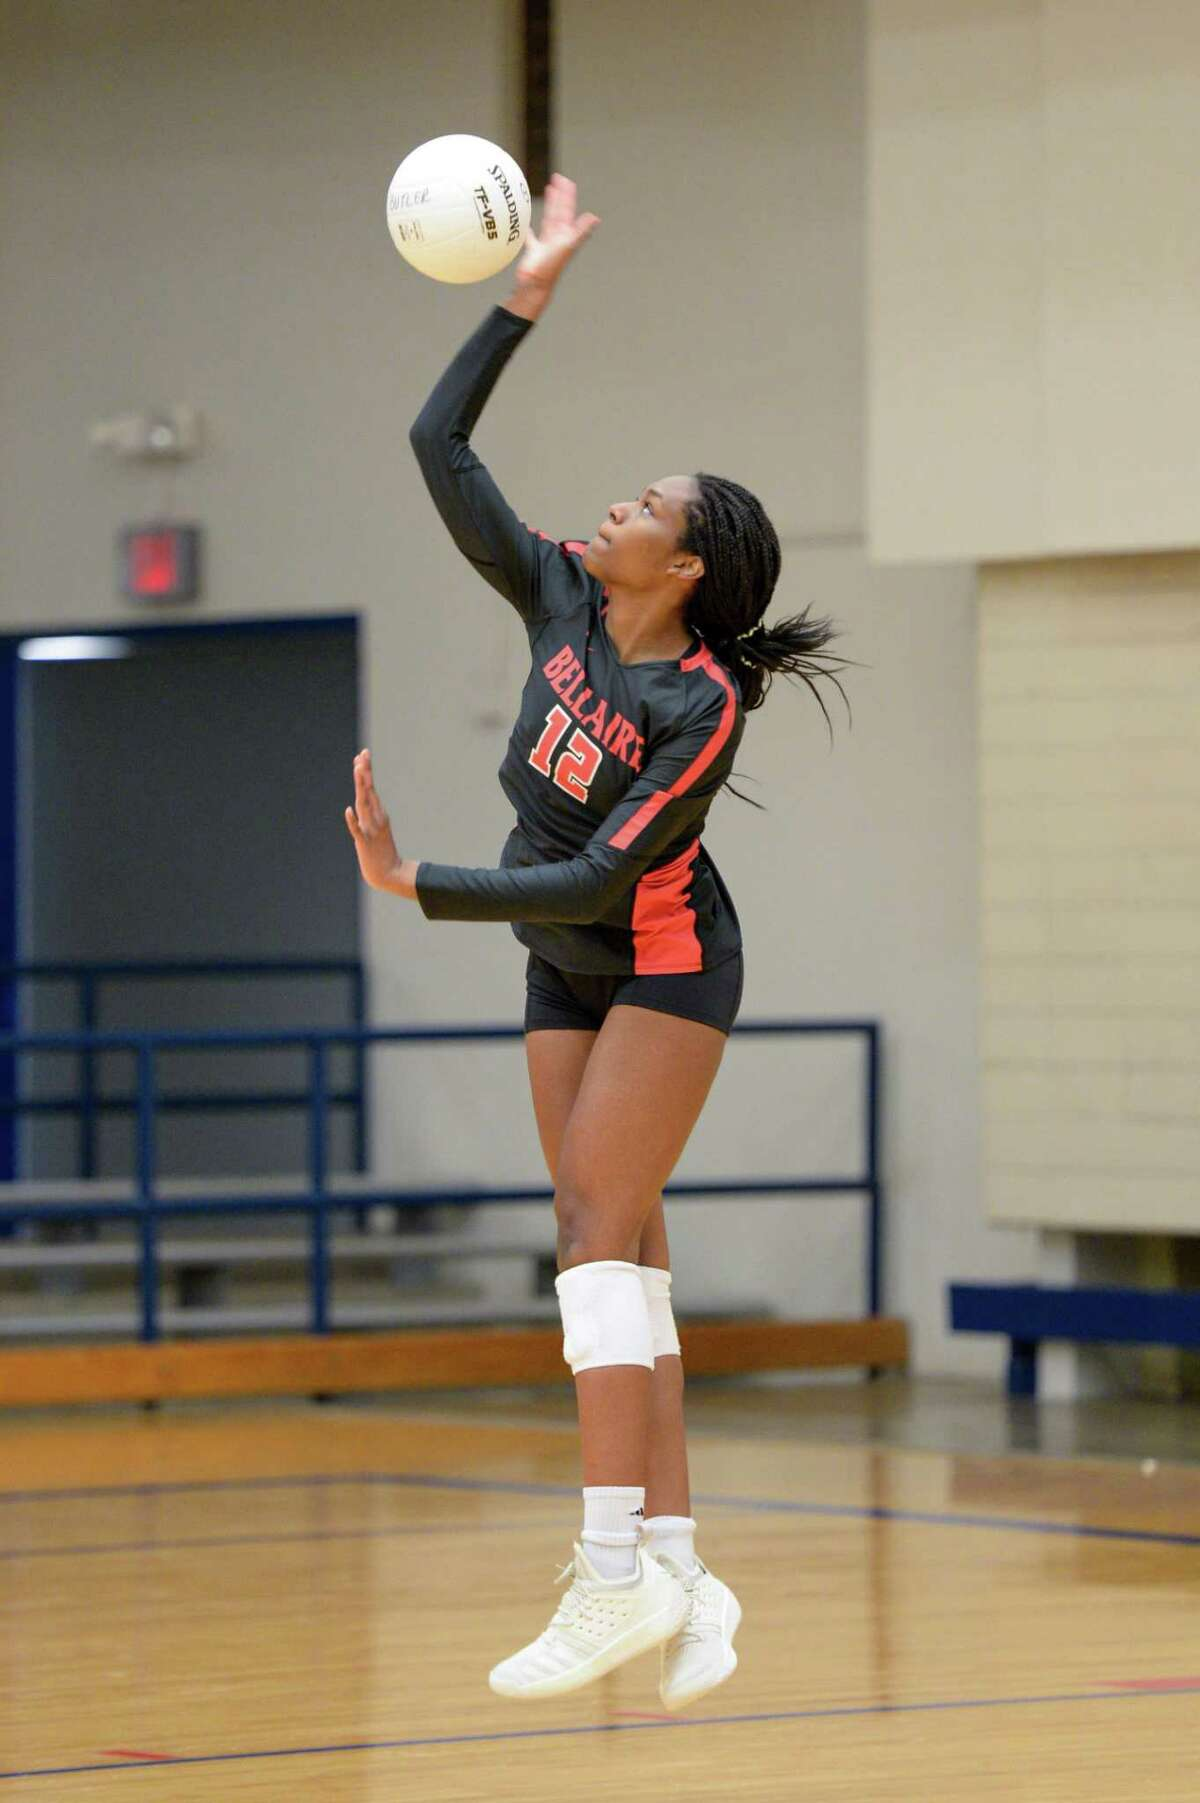 Starr Martin (12) of Bellaire serves a ball during the second set of a high school volleyball match between the Bellaire Cardinals and the Chavez Lobos on Tuesday, September 24, 2019 at Butler Fieldhouse, Houston, TX.